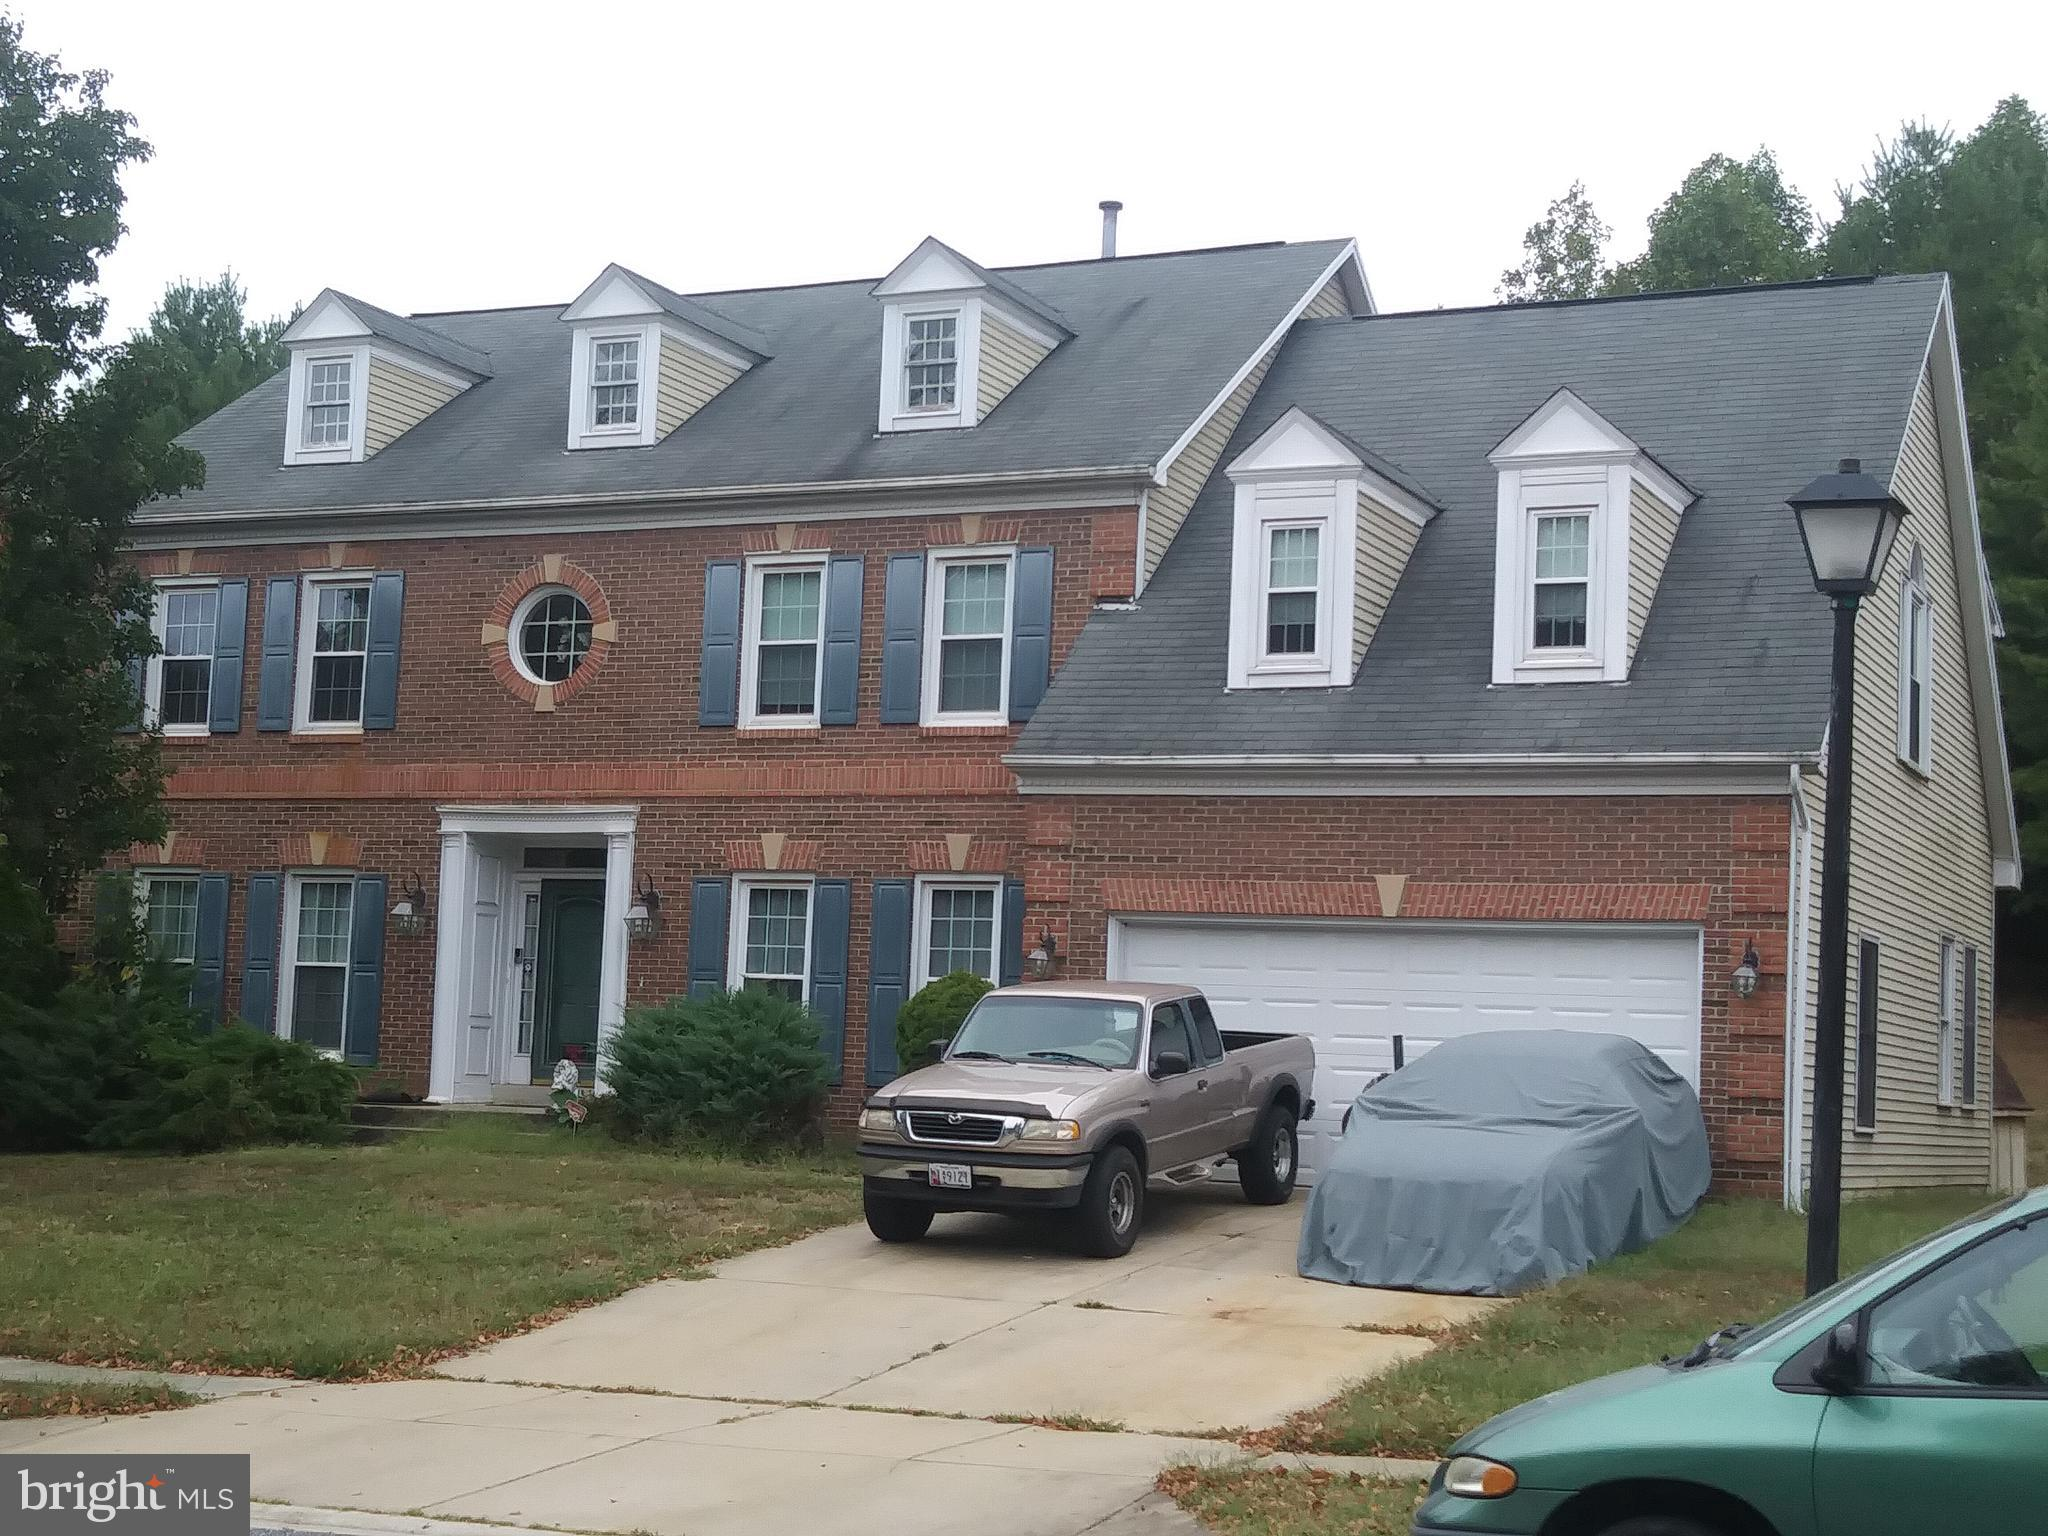 SHORT SALE APPROVED $400,000/Under contractSeeking APPROVED buyers as back up contract buyersPropert